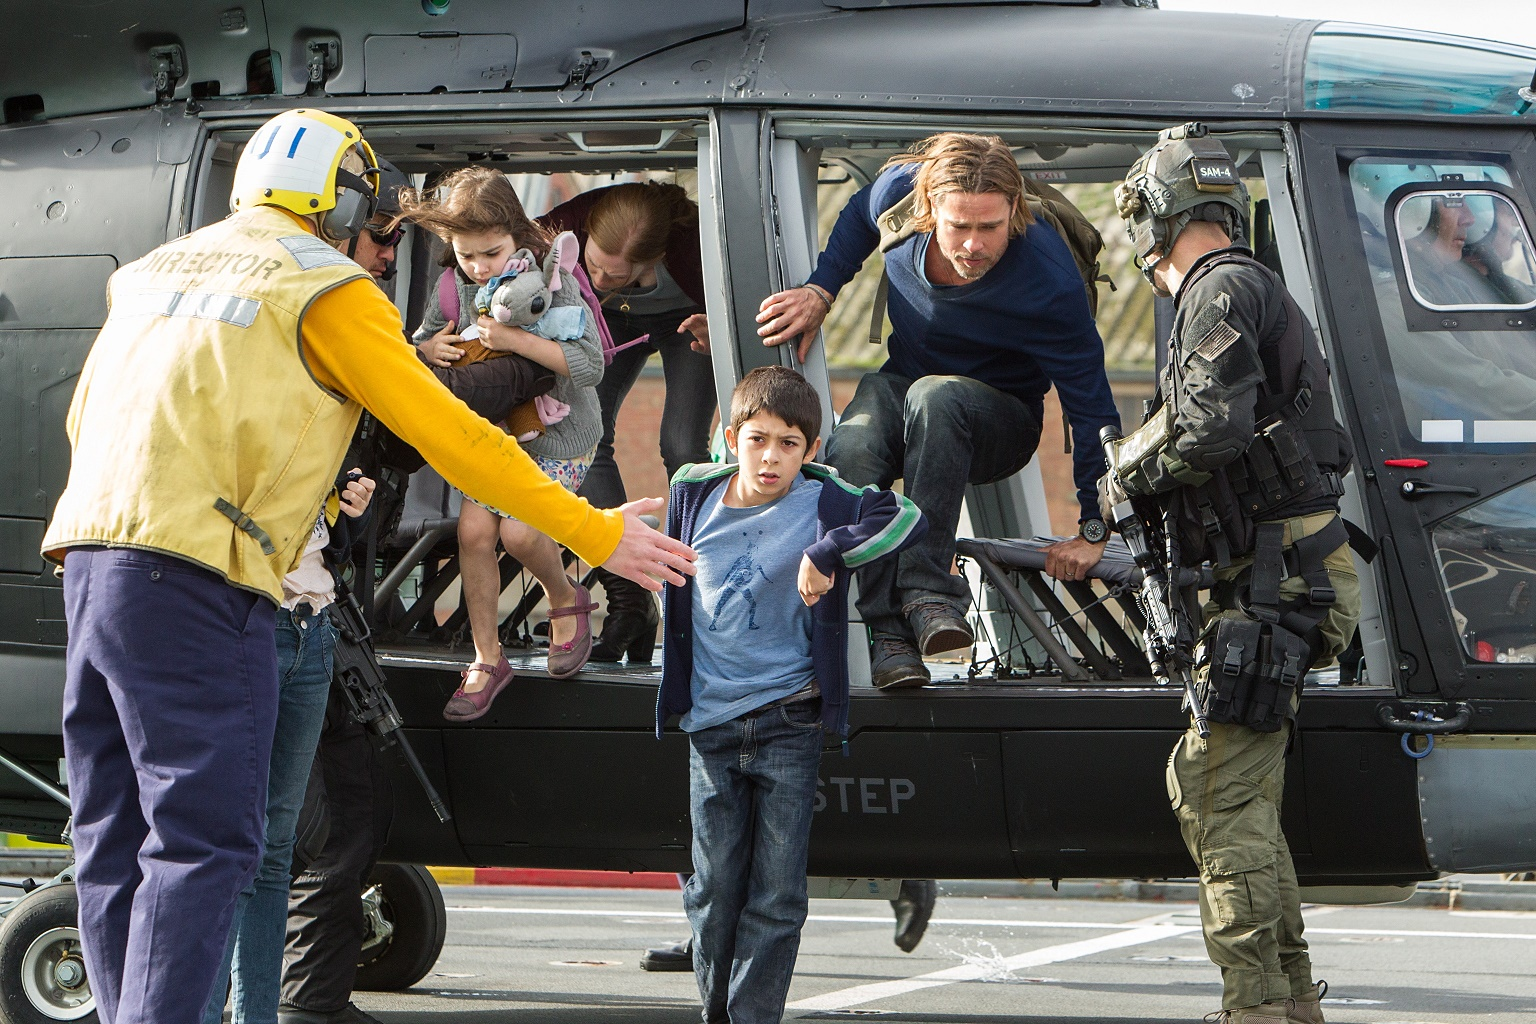 Left to right: Sterling Jerins is Constance Lane, Mireille Enos is Karin Lane, Fabrizio Zacharee Guido is Tomas, and Brad Pitt is Gerry Lane in WORLD WAR Z, from Paramount Pictures and Skydance Productions in association with Hemisphere Media Capital and GK Films. WWZ-03132R